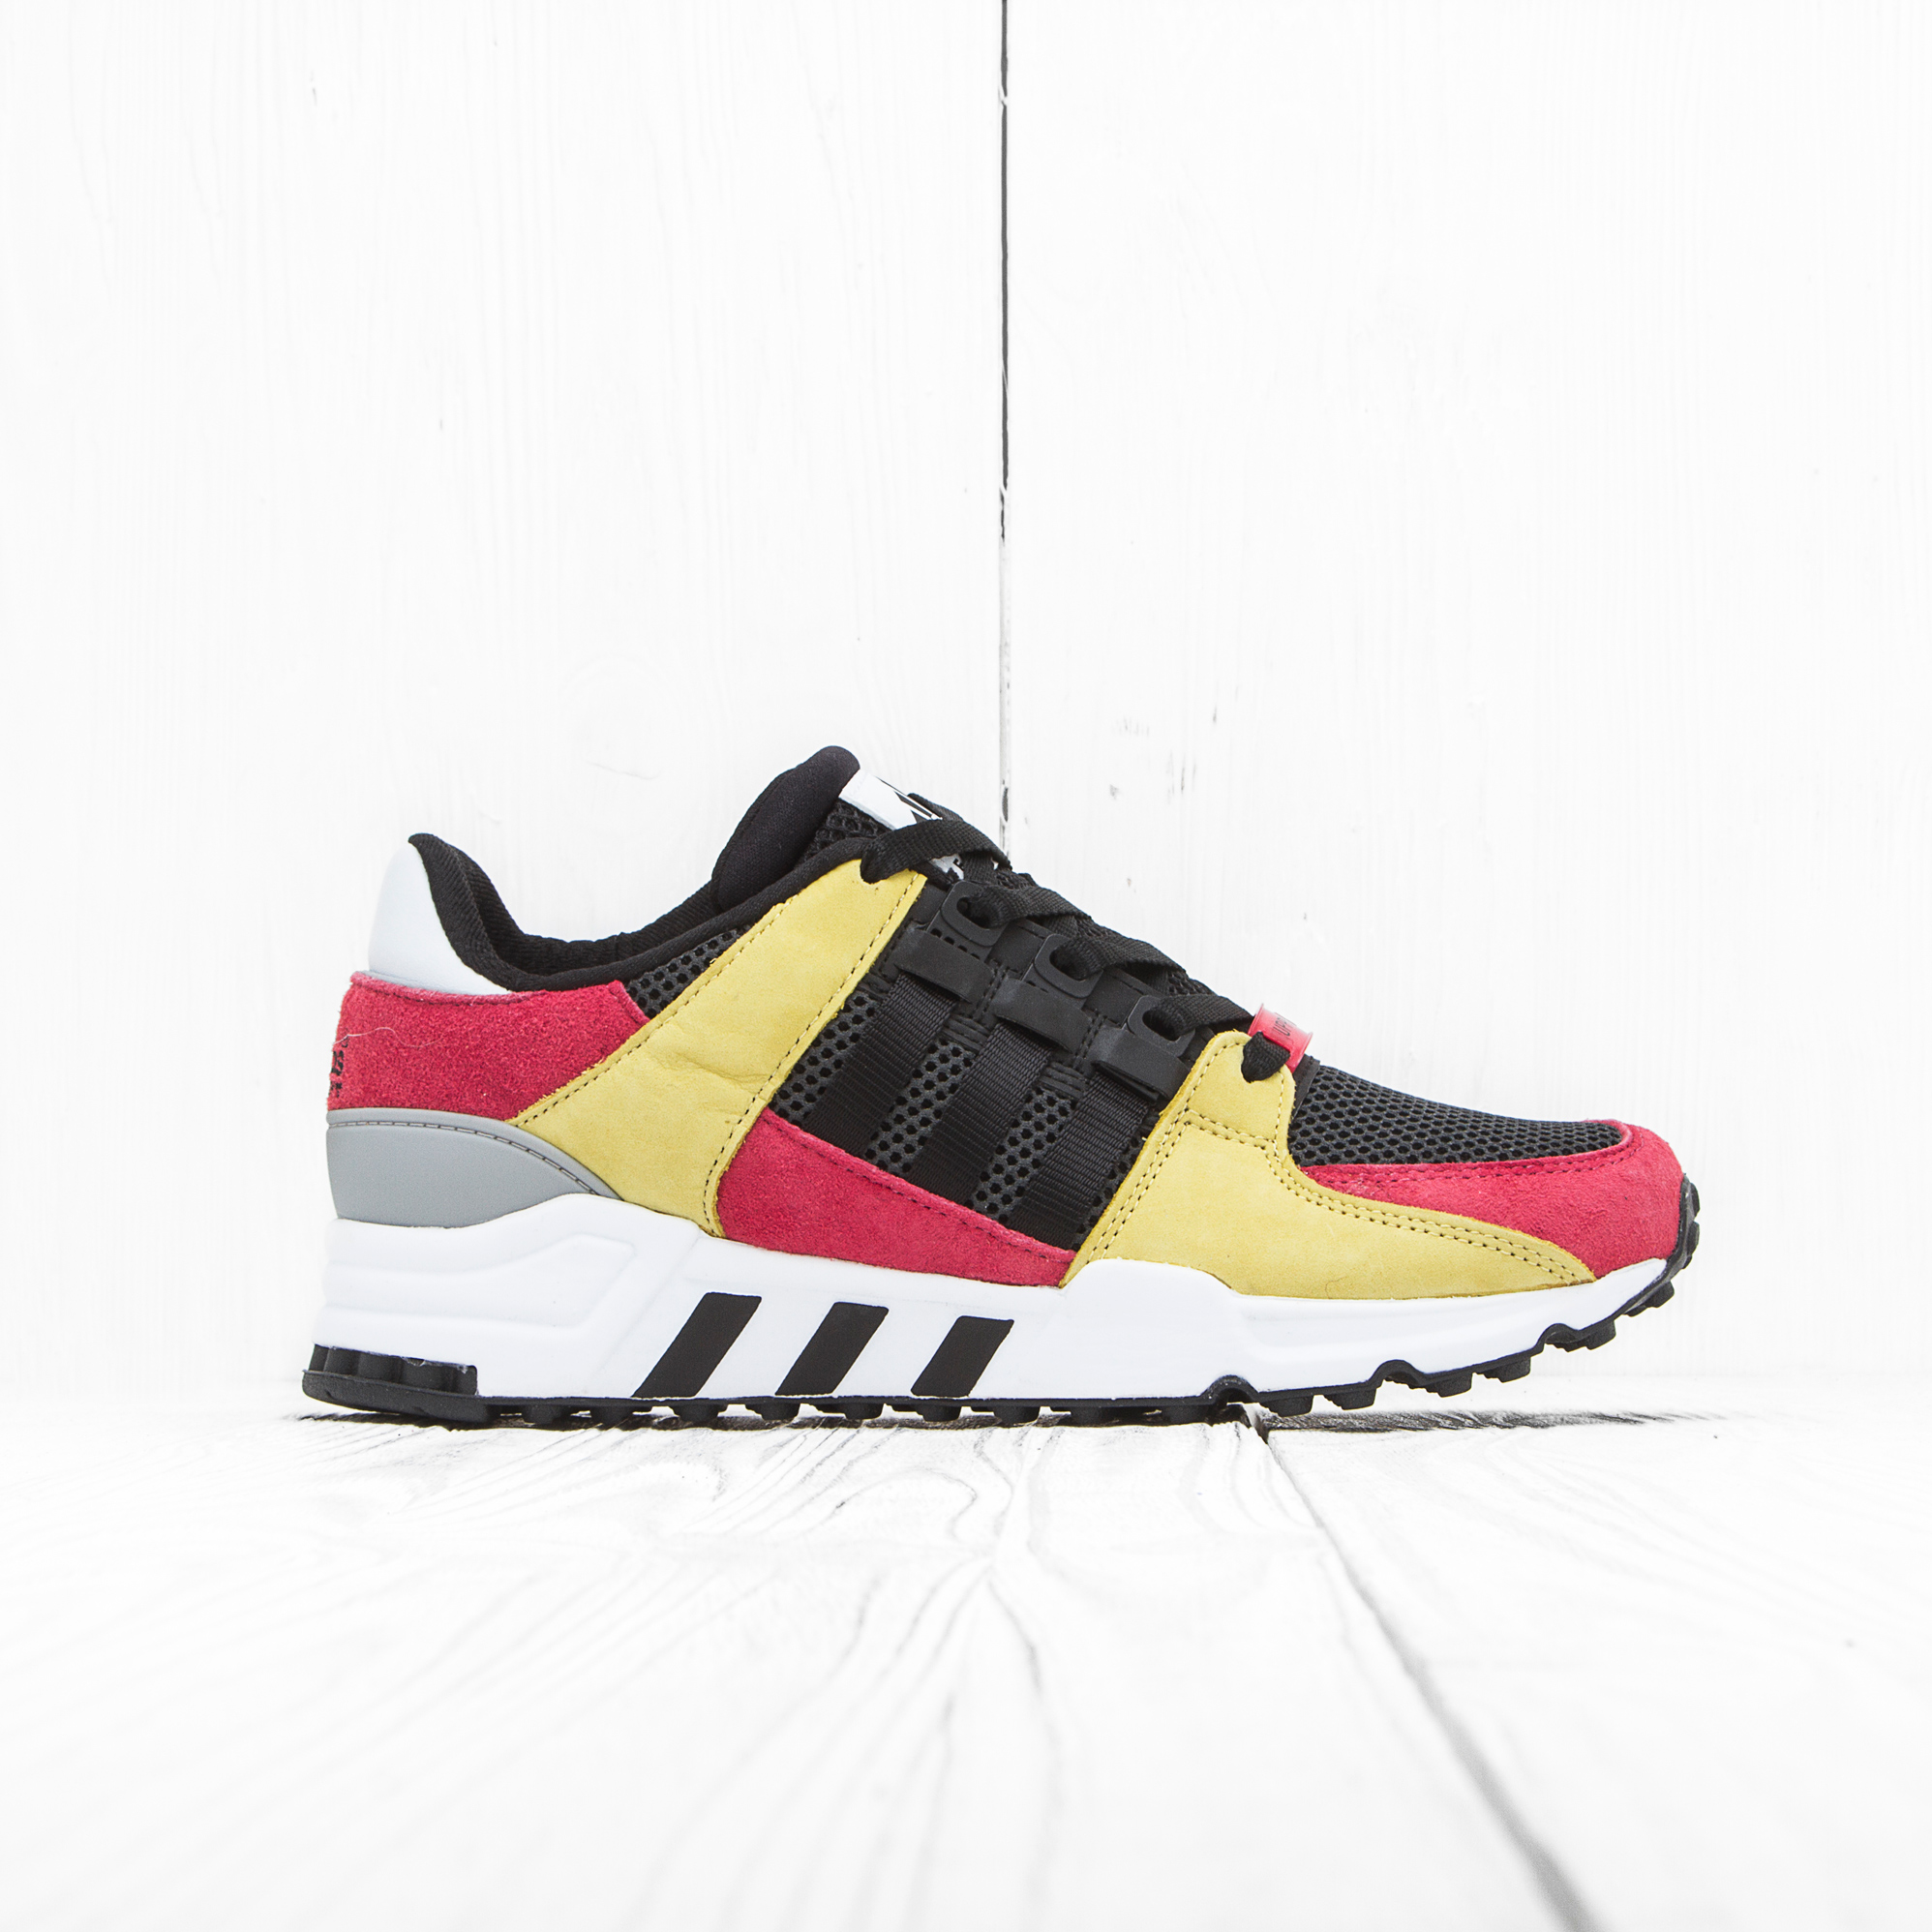 Кроссовки Adidas EQUIPMENT RUNNING SUPPORT Lush Pink/Core Black/Vintage White